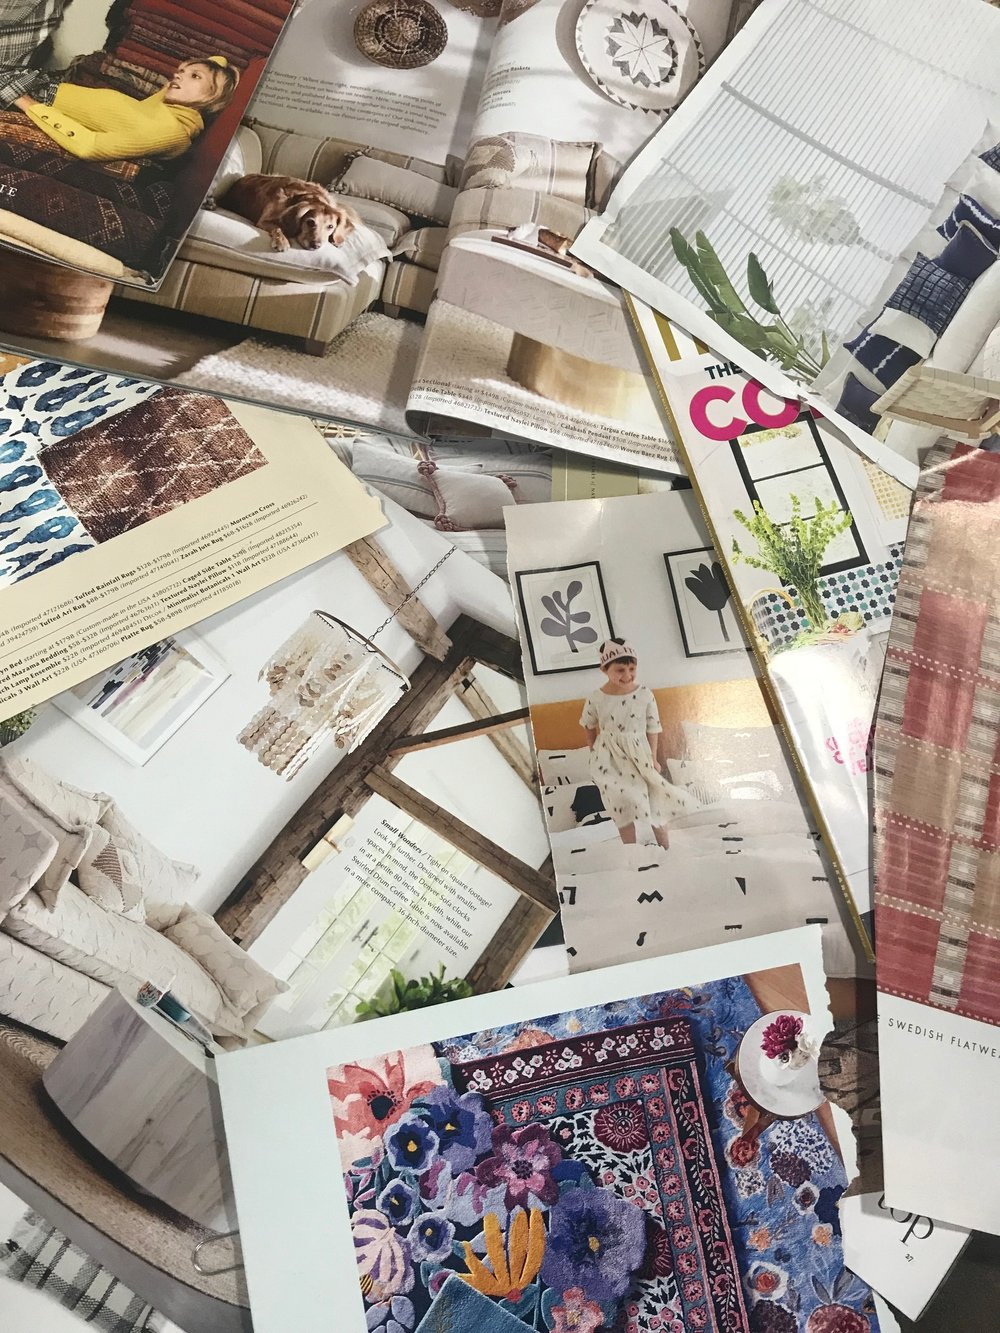 Magazine Research for inspiration and trends